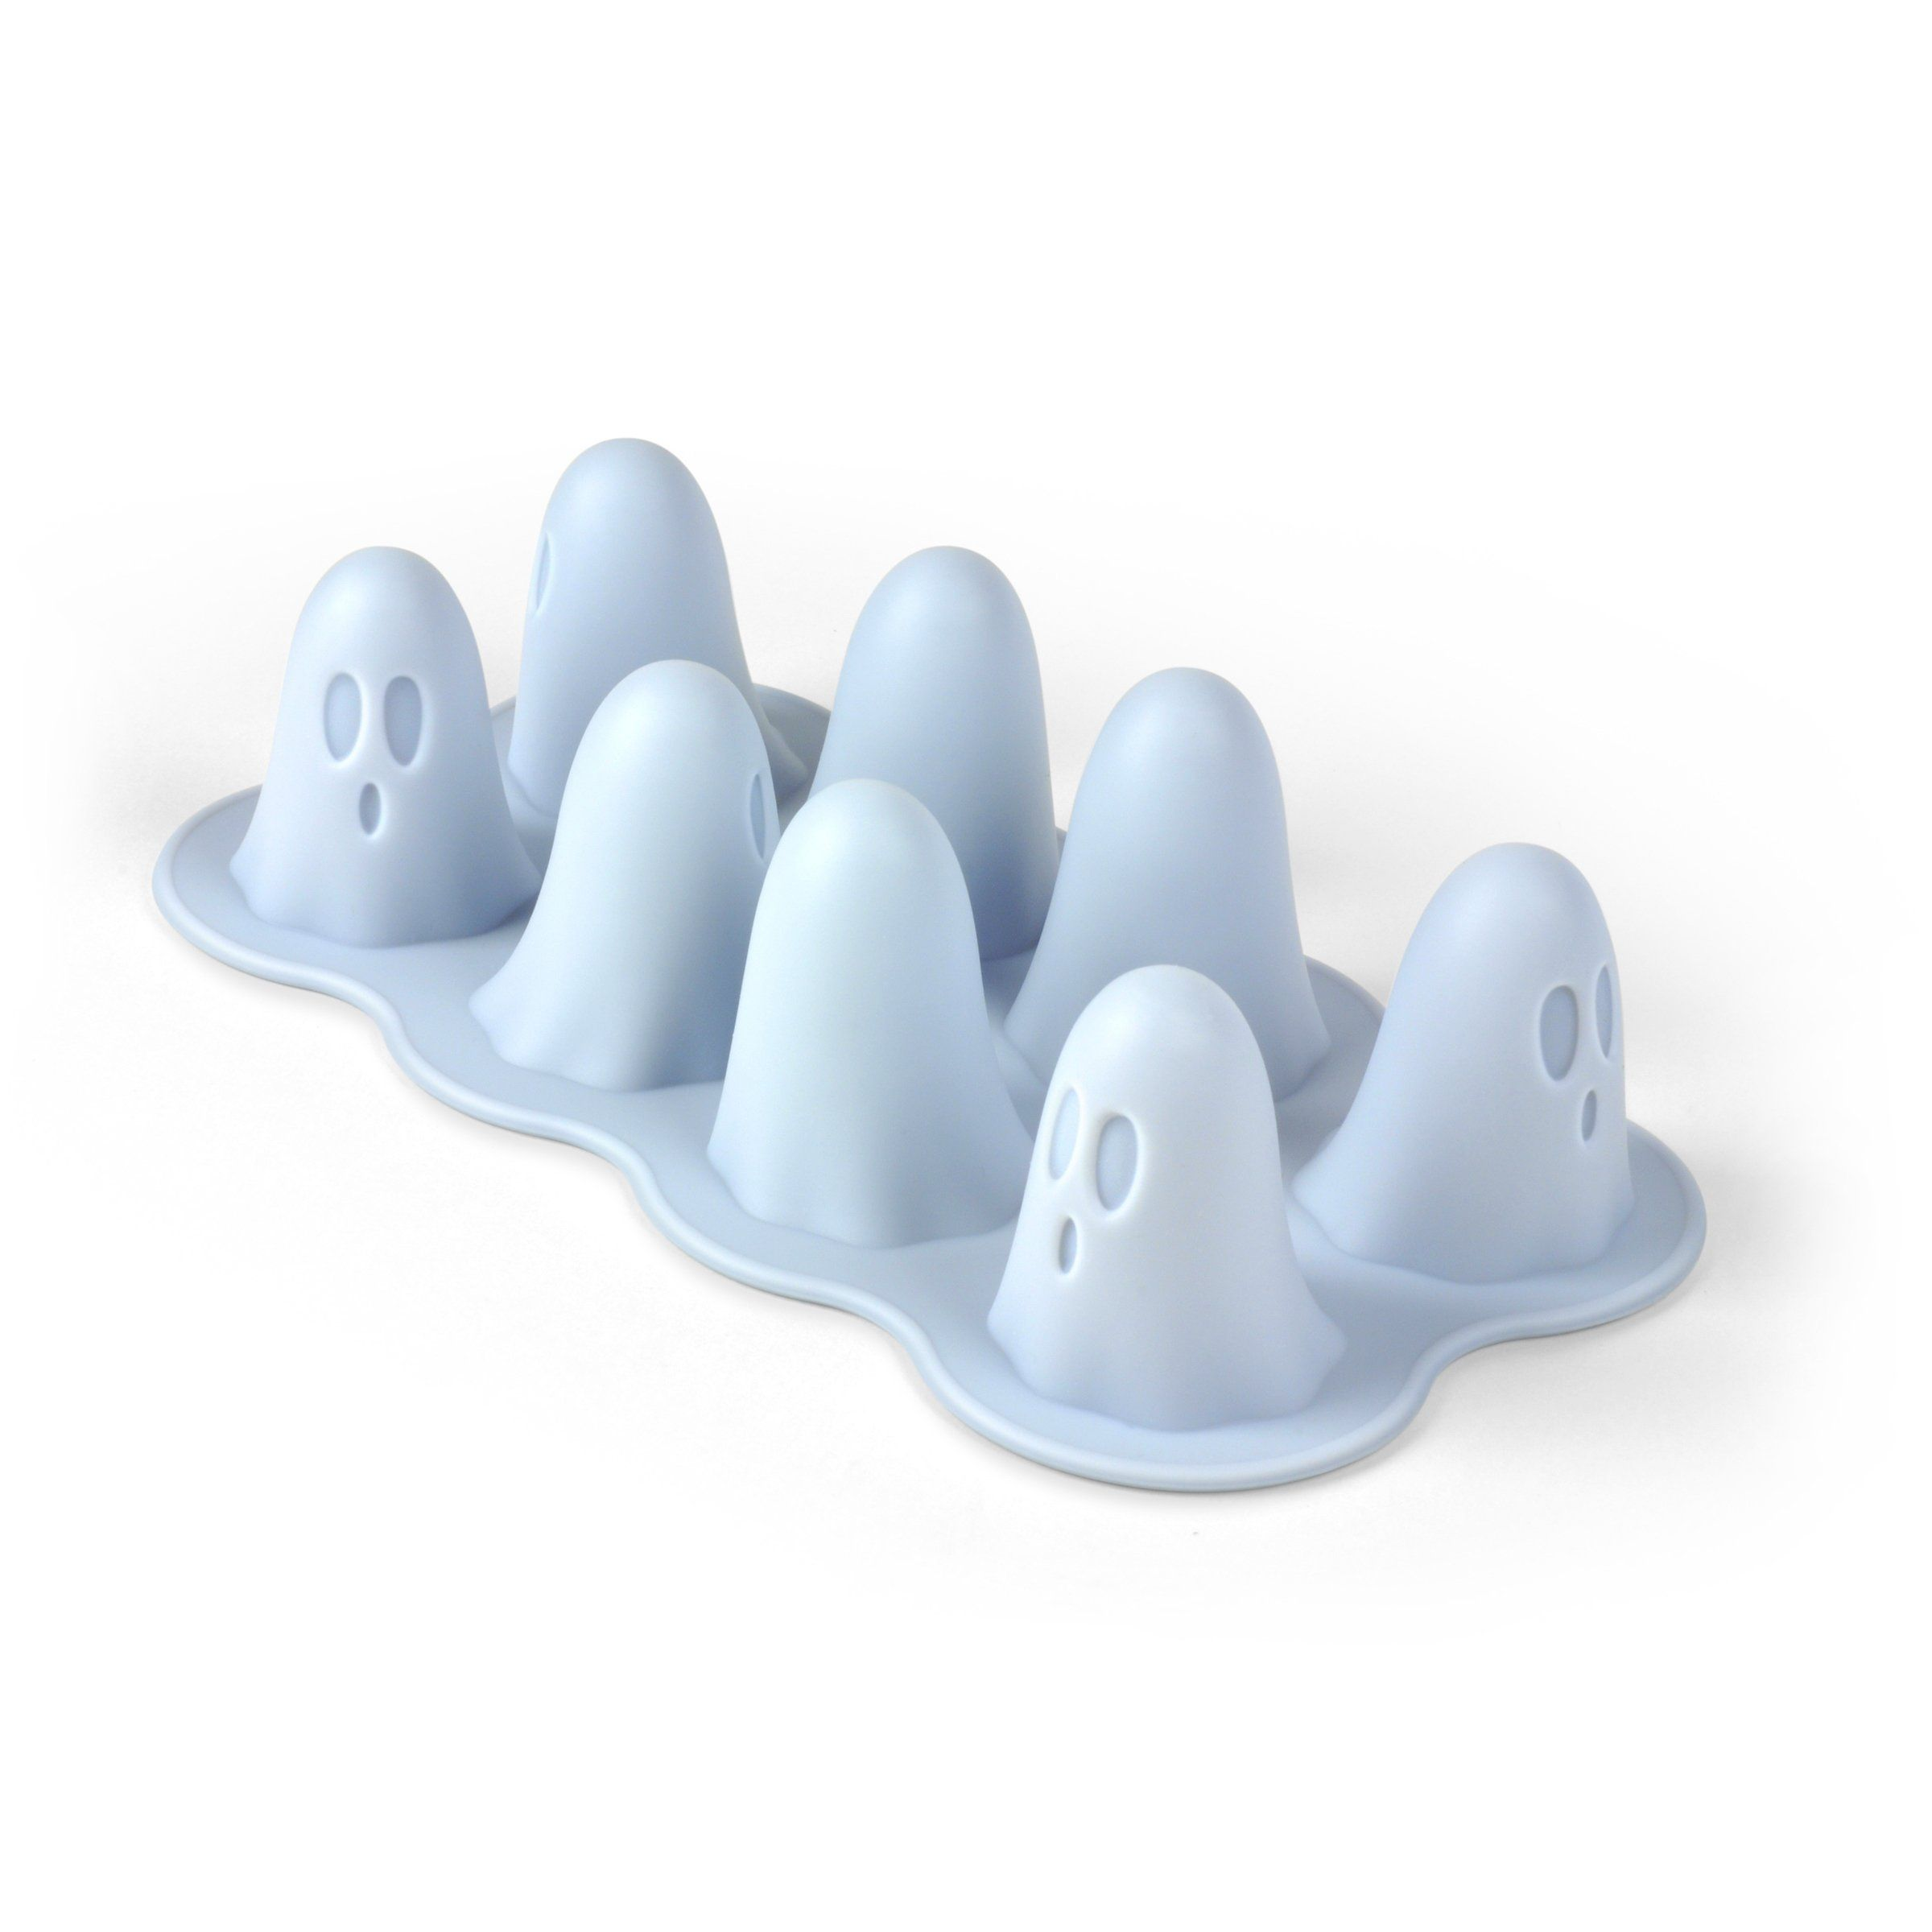 amazon: fred and friends boo cubes ghastly ice tray, grey: ice